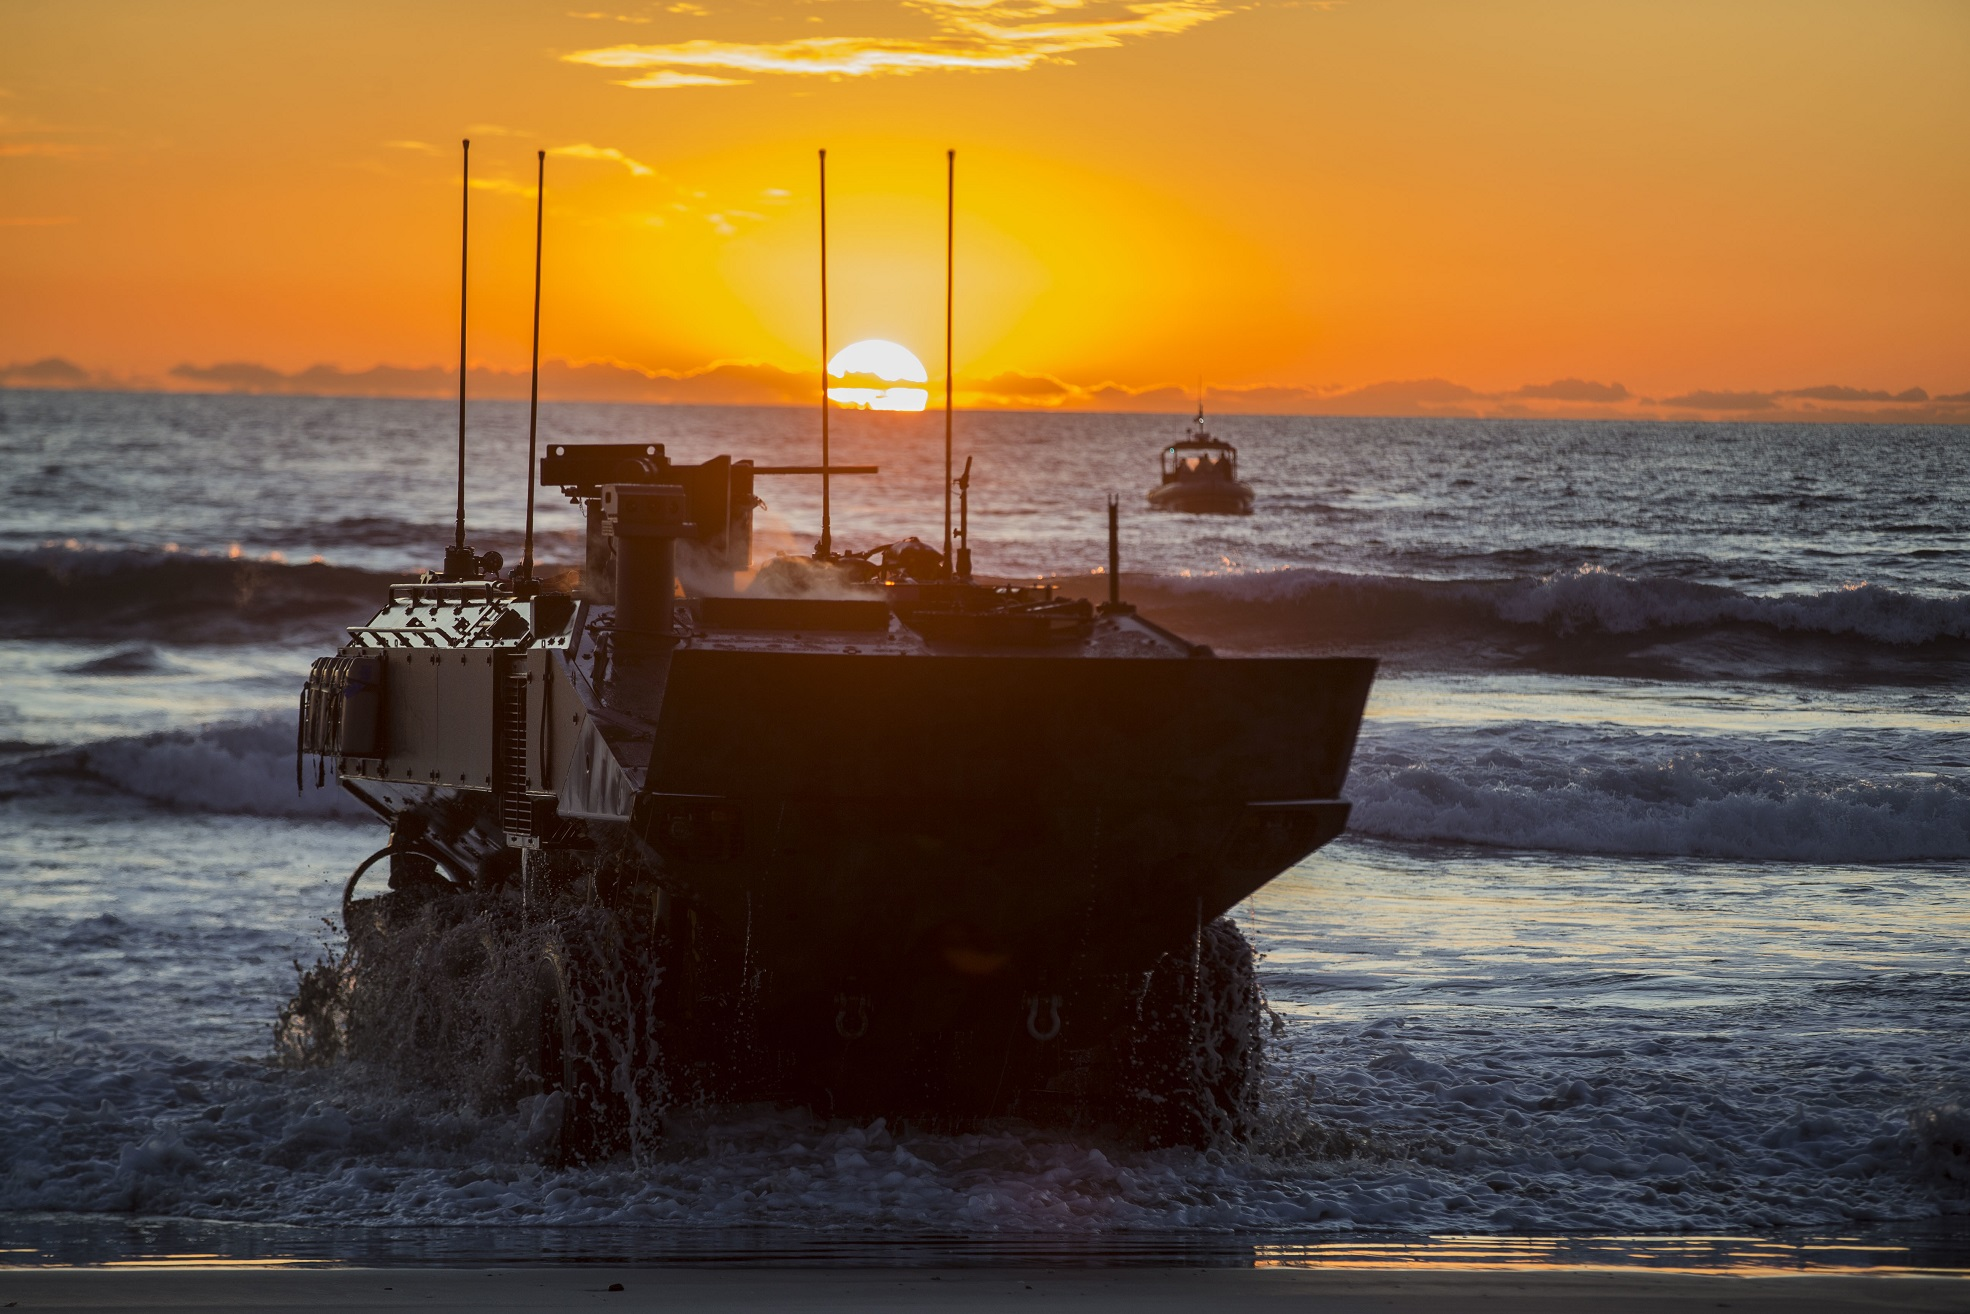 5992712 - U.S. Marines hold low-light tests of its newest combat vehicles – Defence Blog